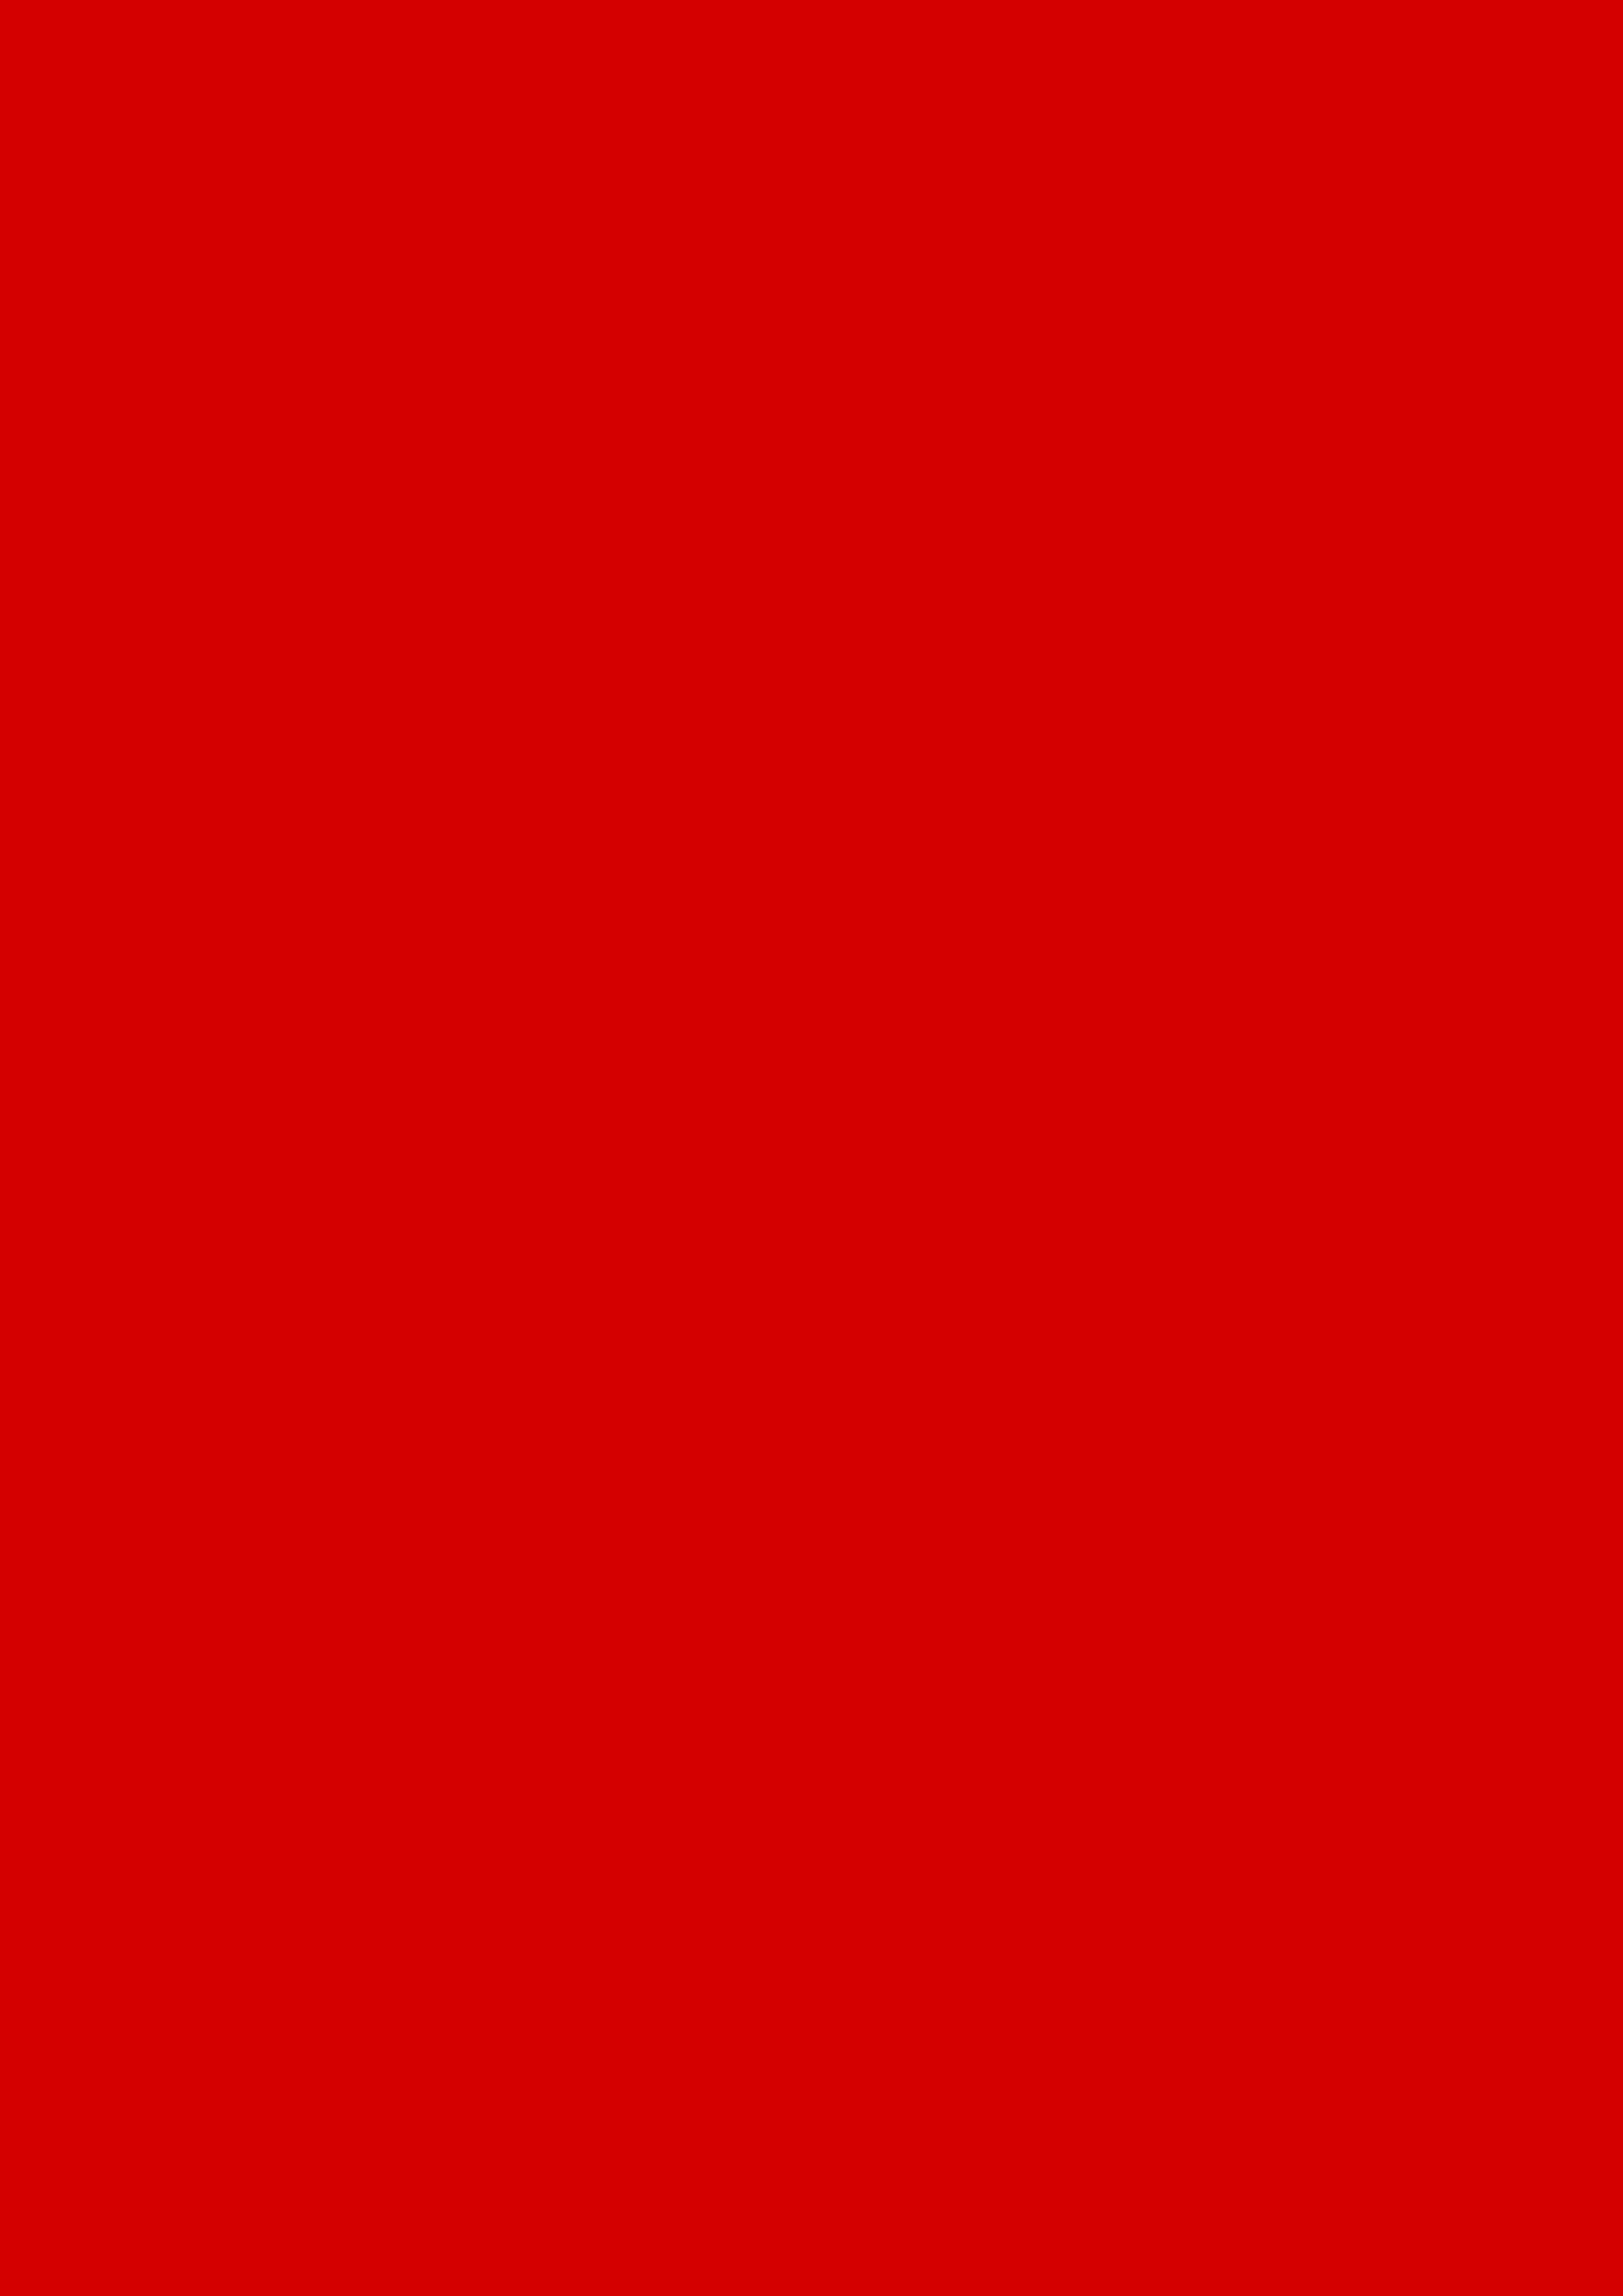 2480x3508 Rosso Corsa Solid Color Background